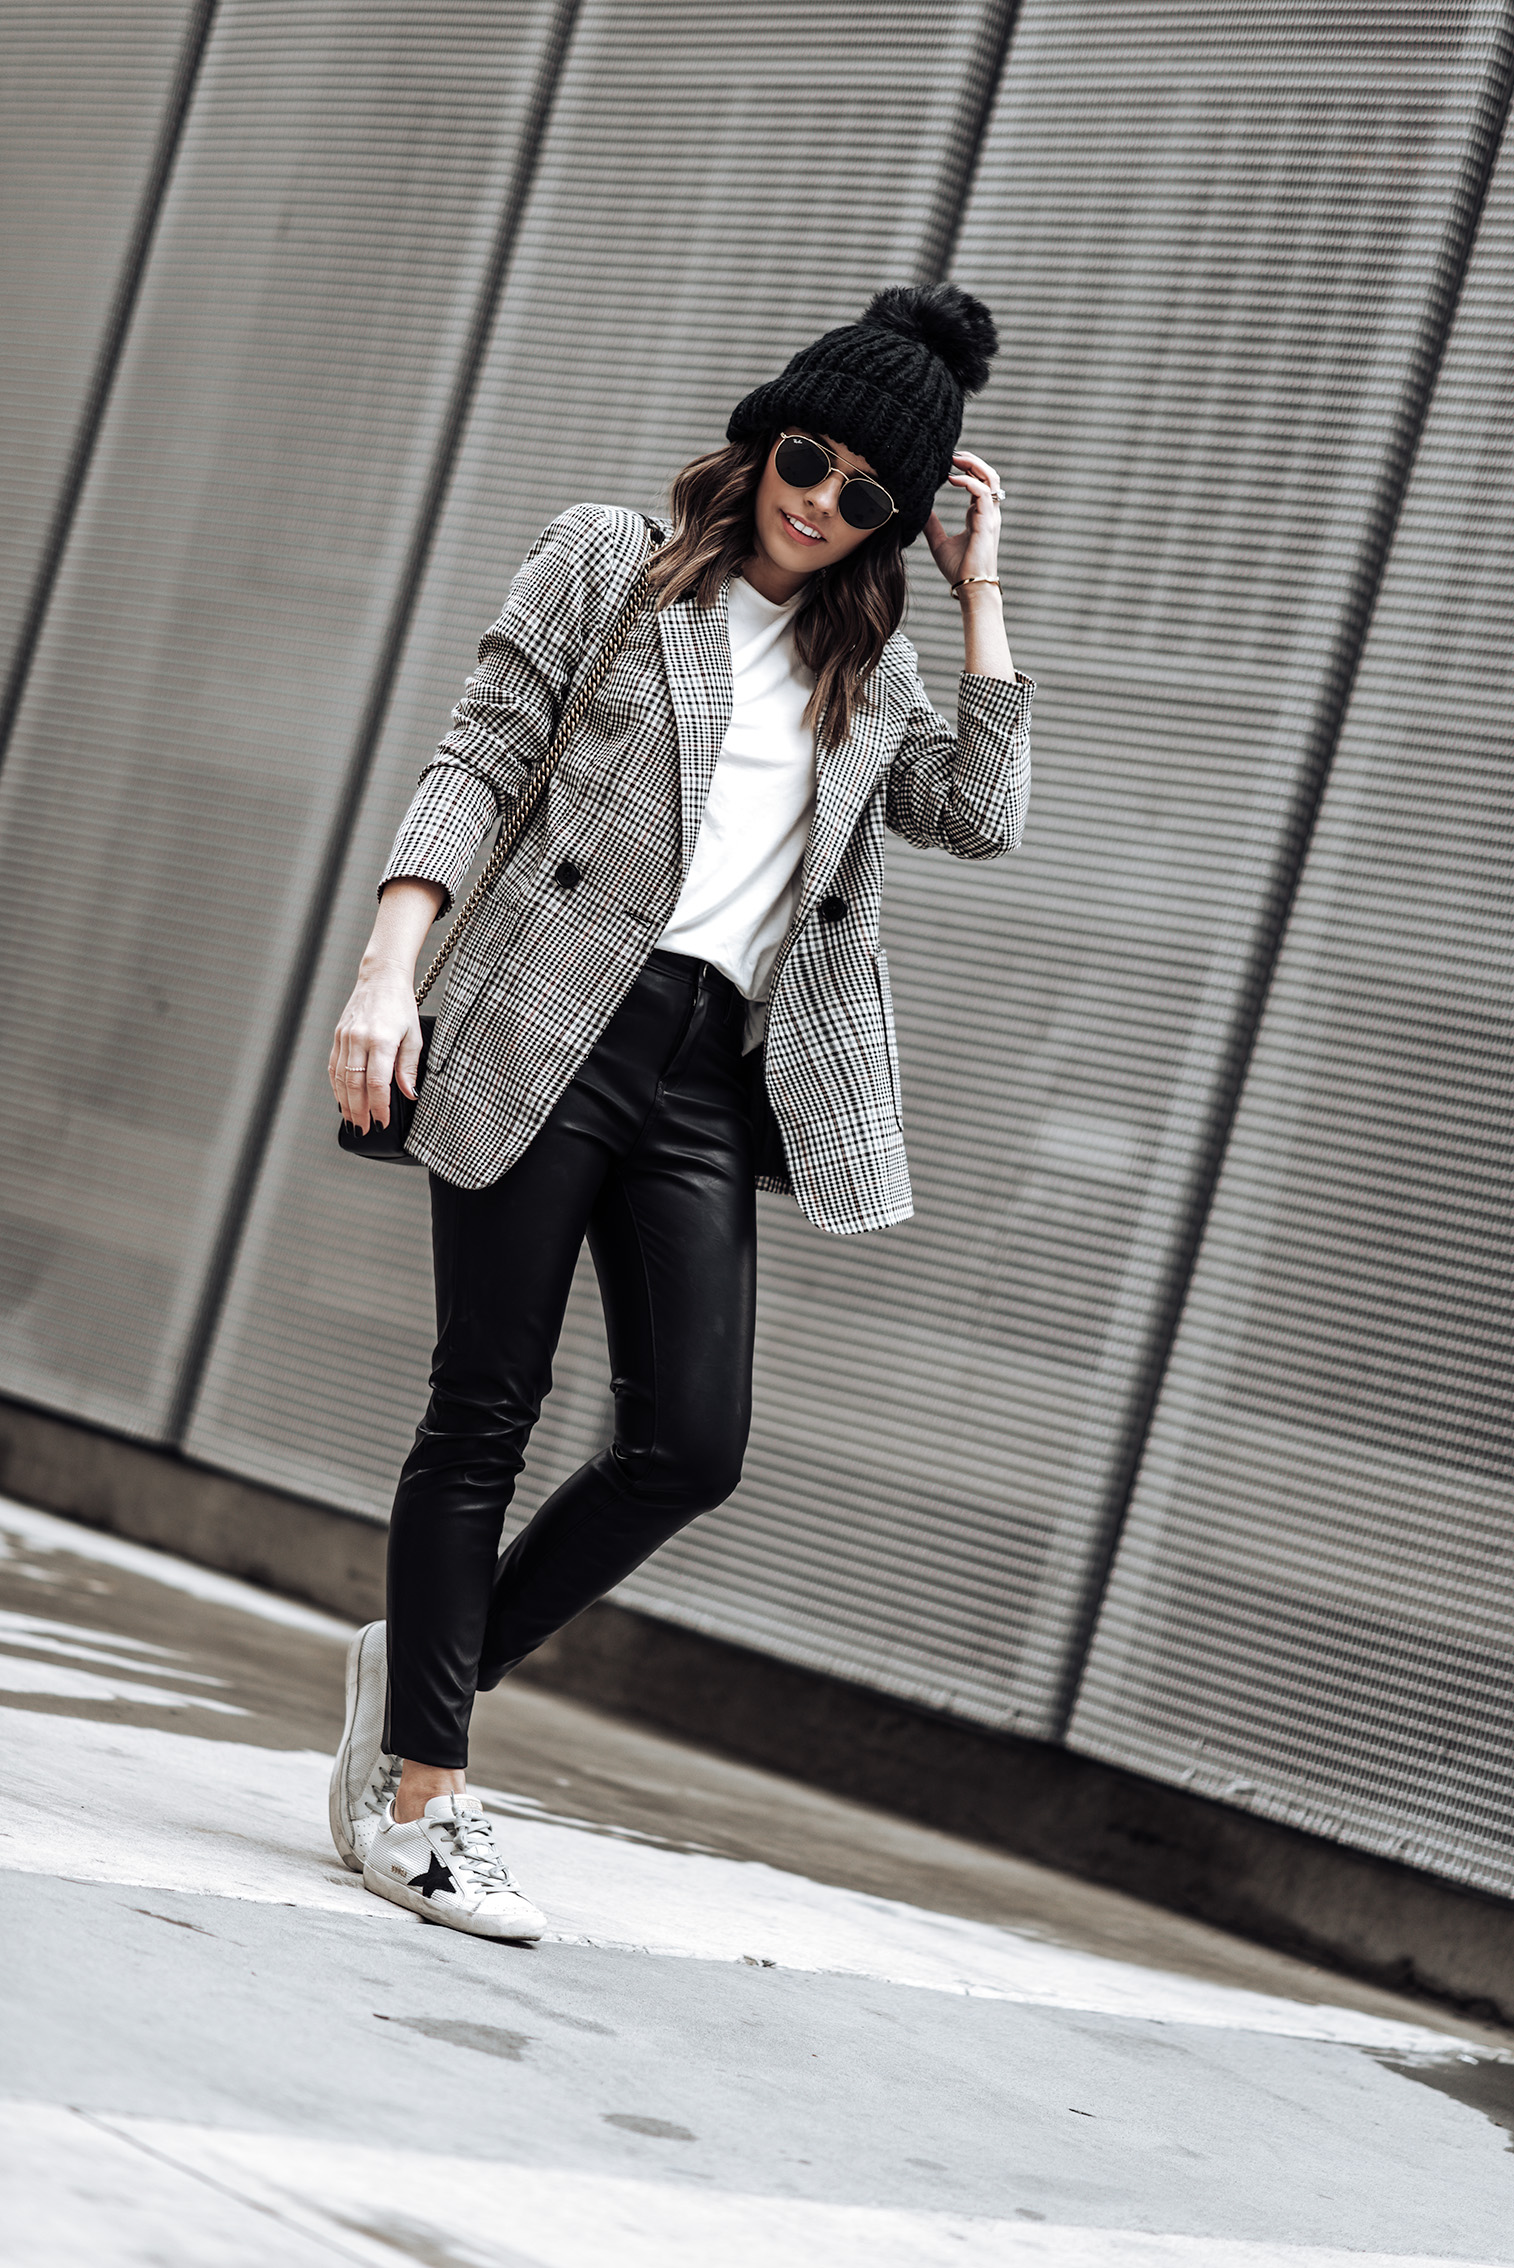 After Christmas sales |Tiffany Jais fashion and lifestyle blogger of Flaunt and Center | Houston fashion blogger | Streetstyle blog | Plaid blazer, beanie outfit, leather pant outfits, golden goose sneakers